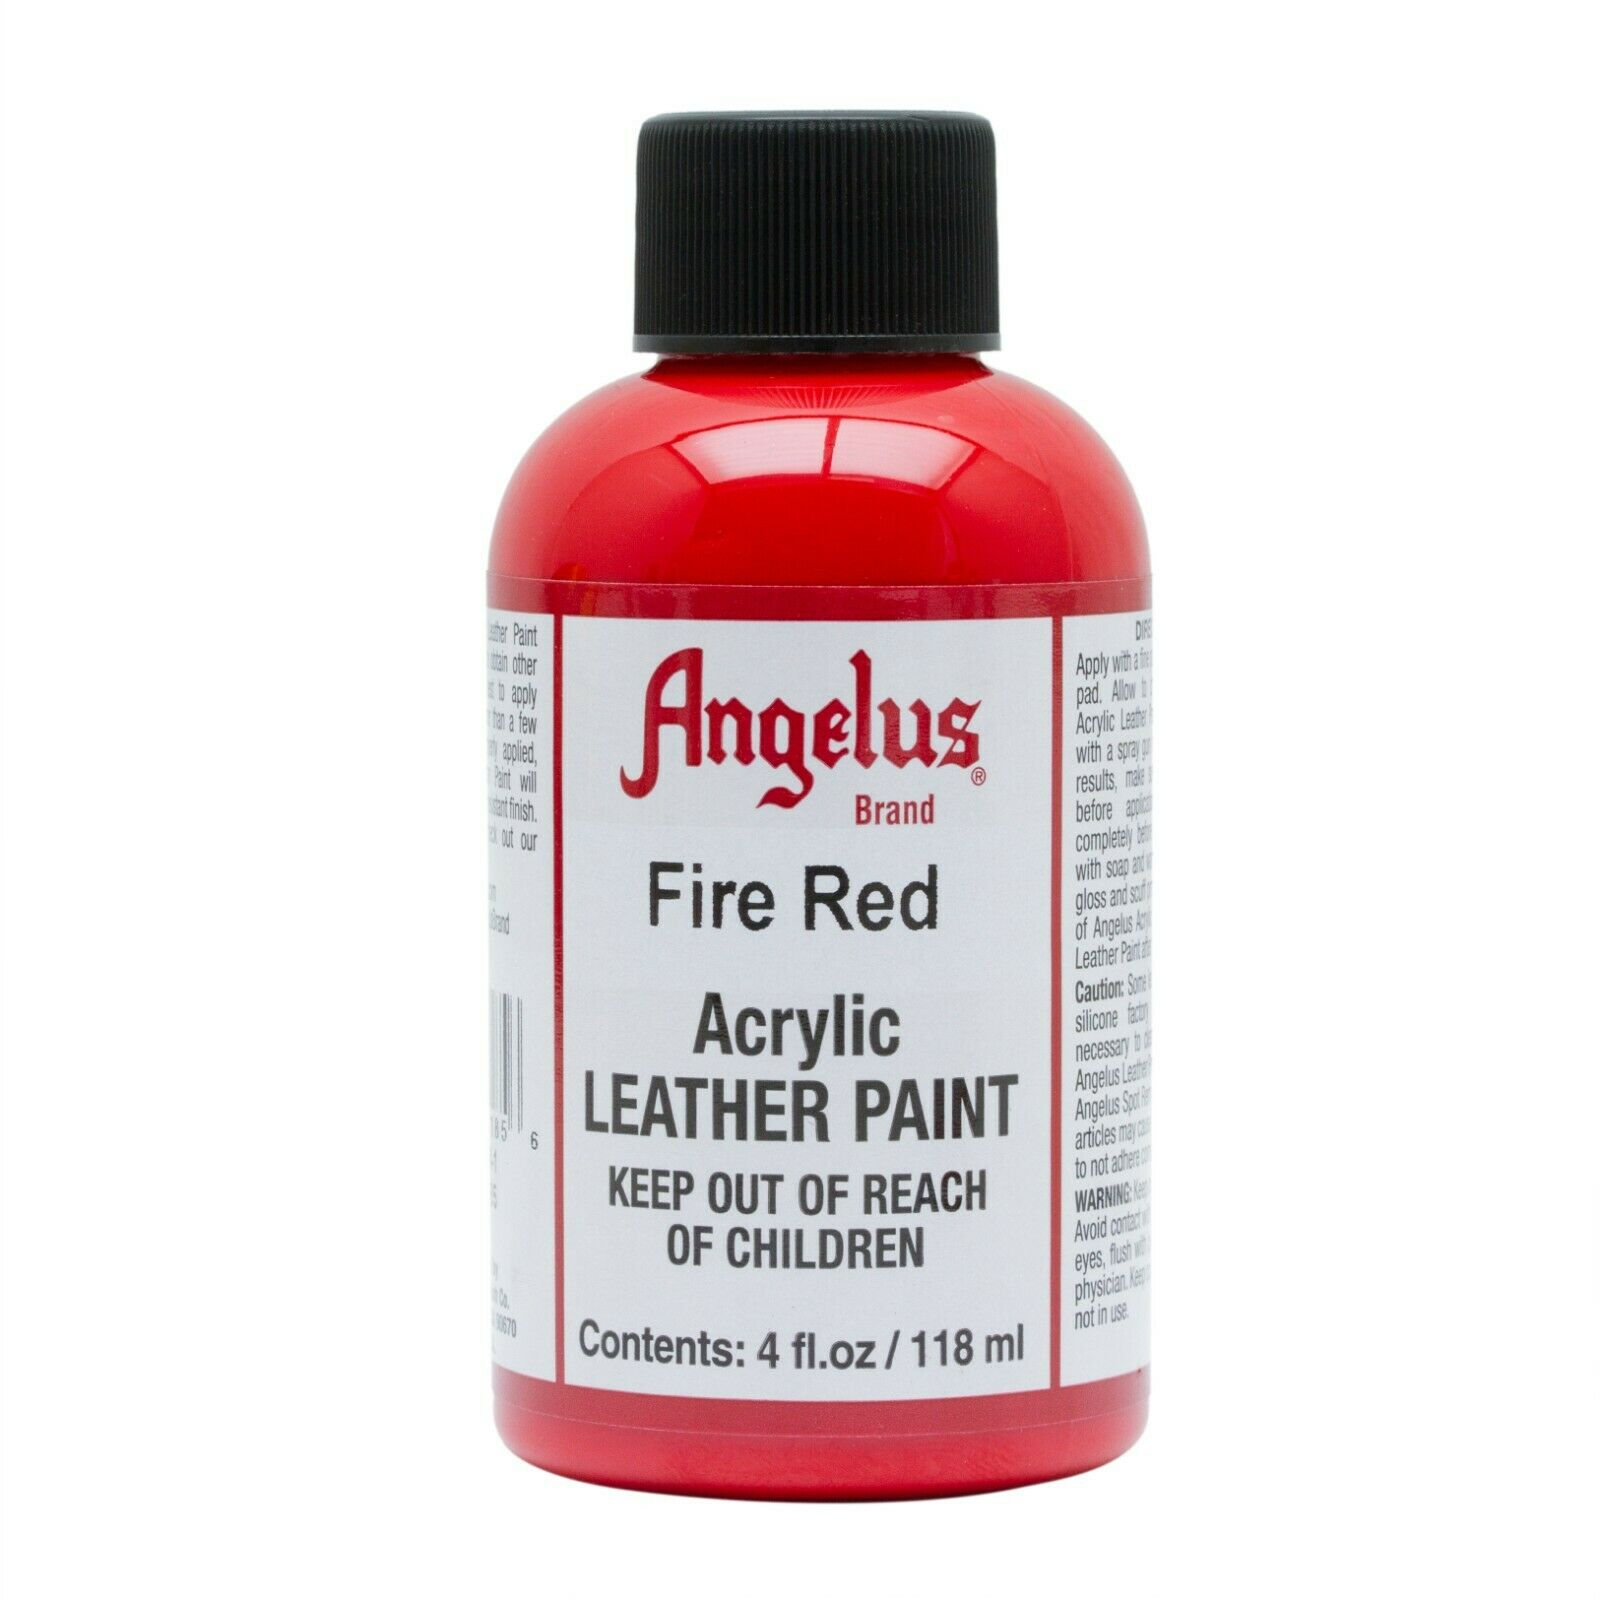 Angelus Acrylic Leather Paint Fire Red 4oz Crafts